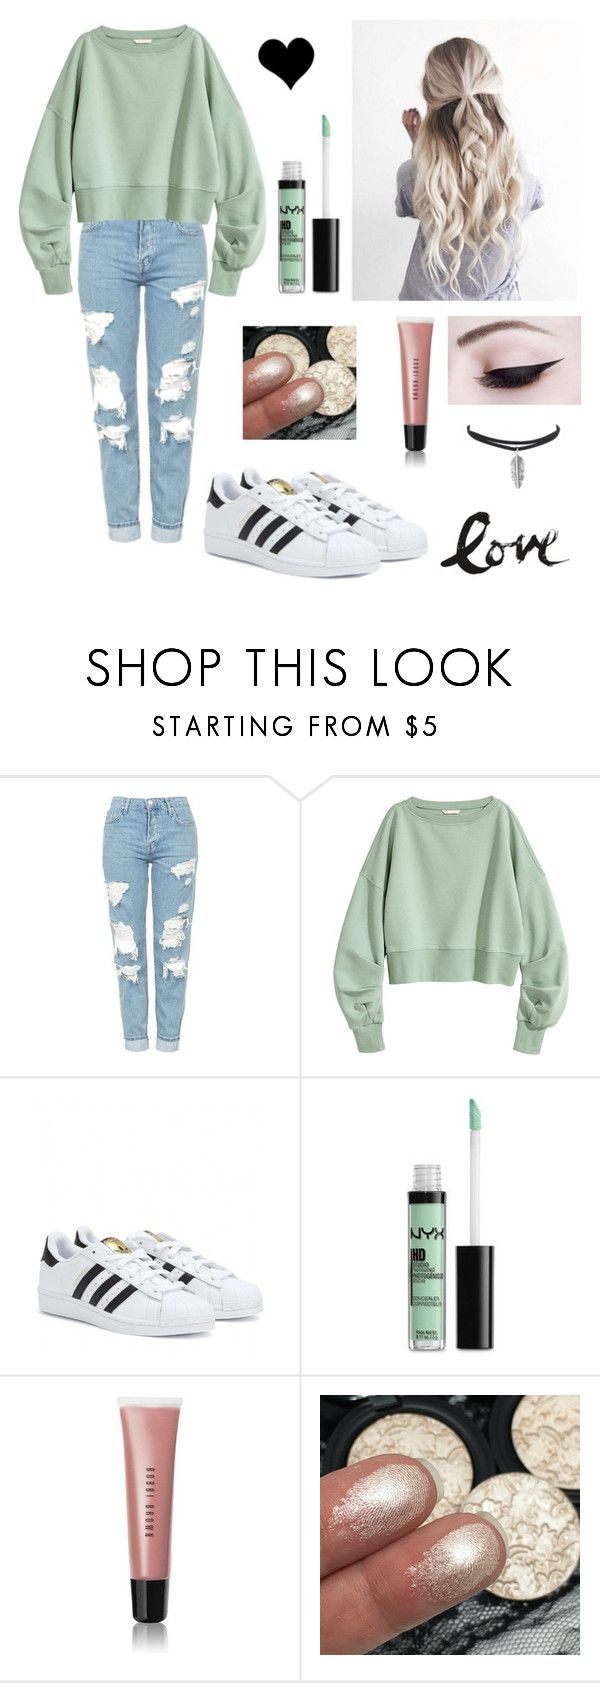 """Mom Jeans + Sweater"" by sav16 ❤ liked on Polyvore featuring Topshop, adidas, NYX and Bobbi Brown Cosmetics"